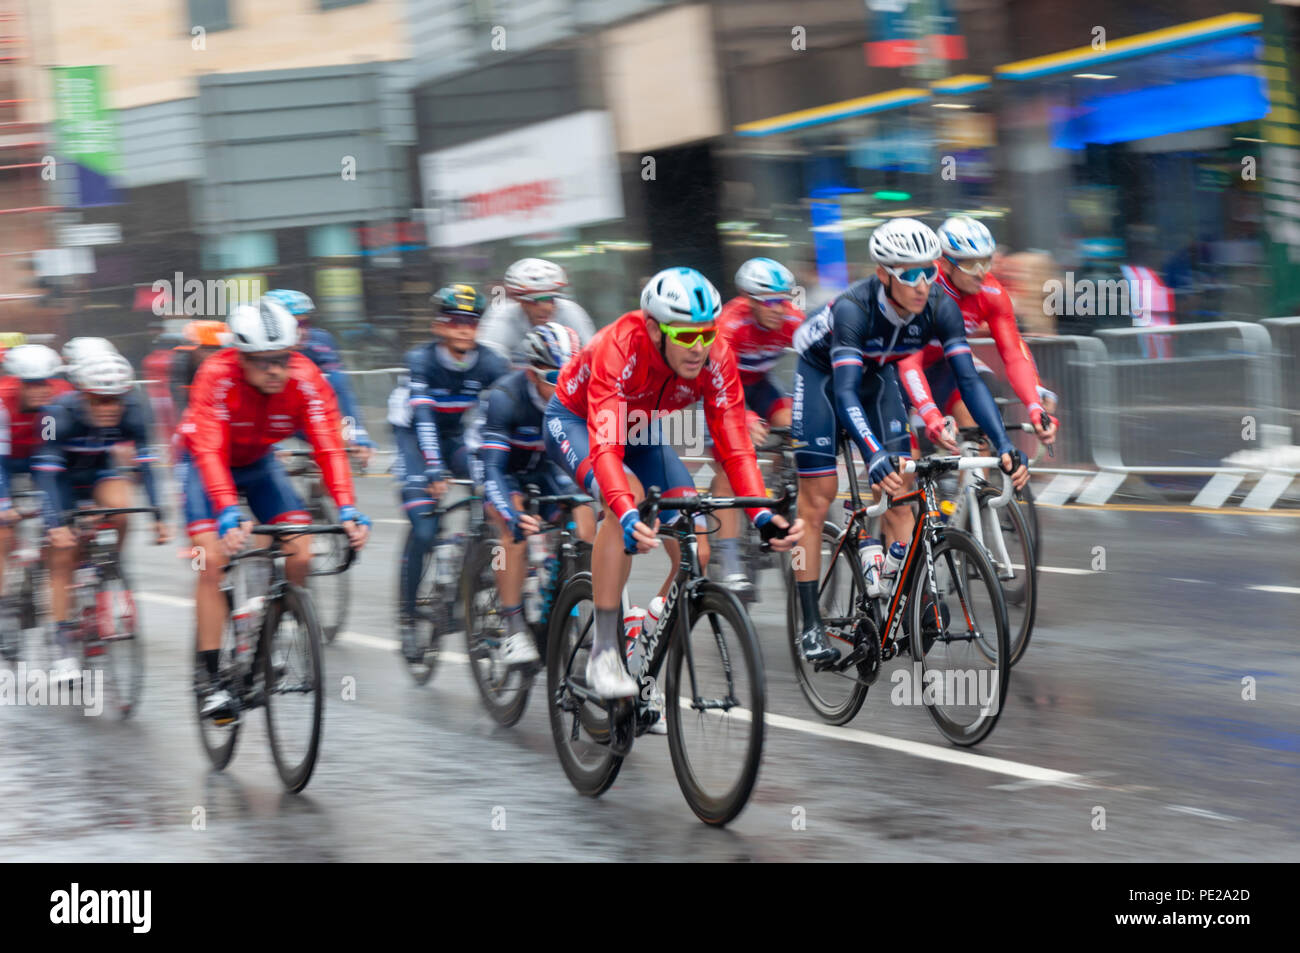 Glasgow, Scotland, UK. 12th August, 2018. The peloton travels down High Street during the Men's Cycling Road Race  covering 16 laps and 230 km through the streets of the city on day eleven of the European Championships Glasgow 2018. Credit: Skully/Alamy Live News - Stock Image